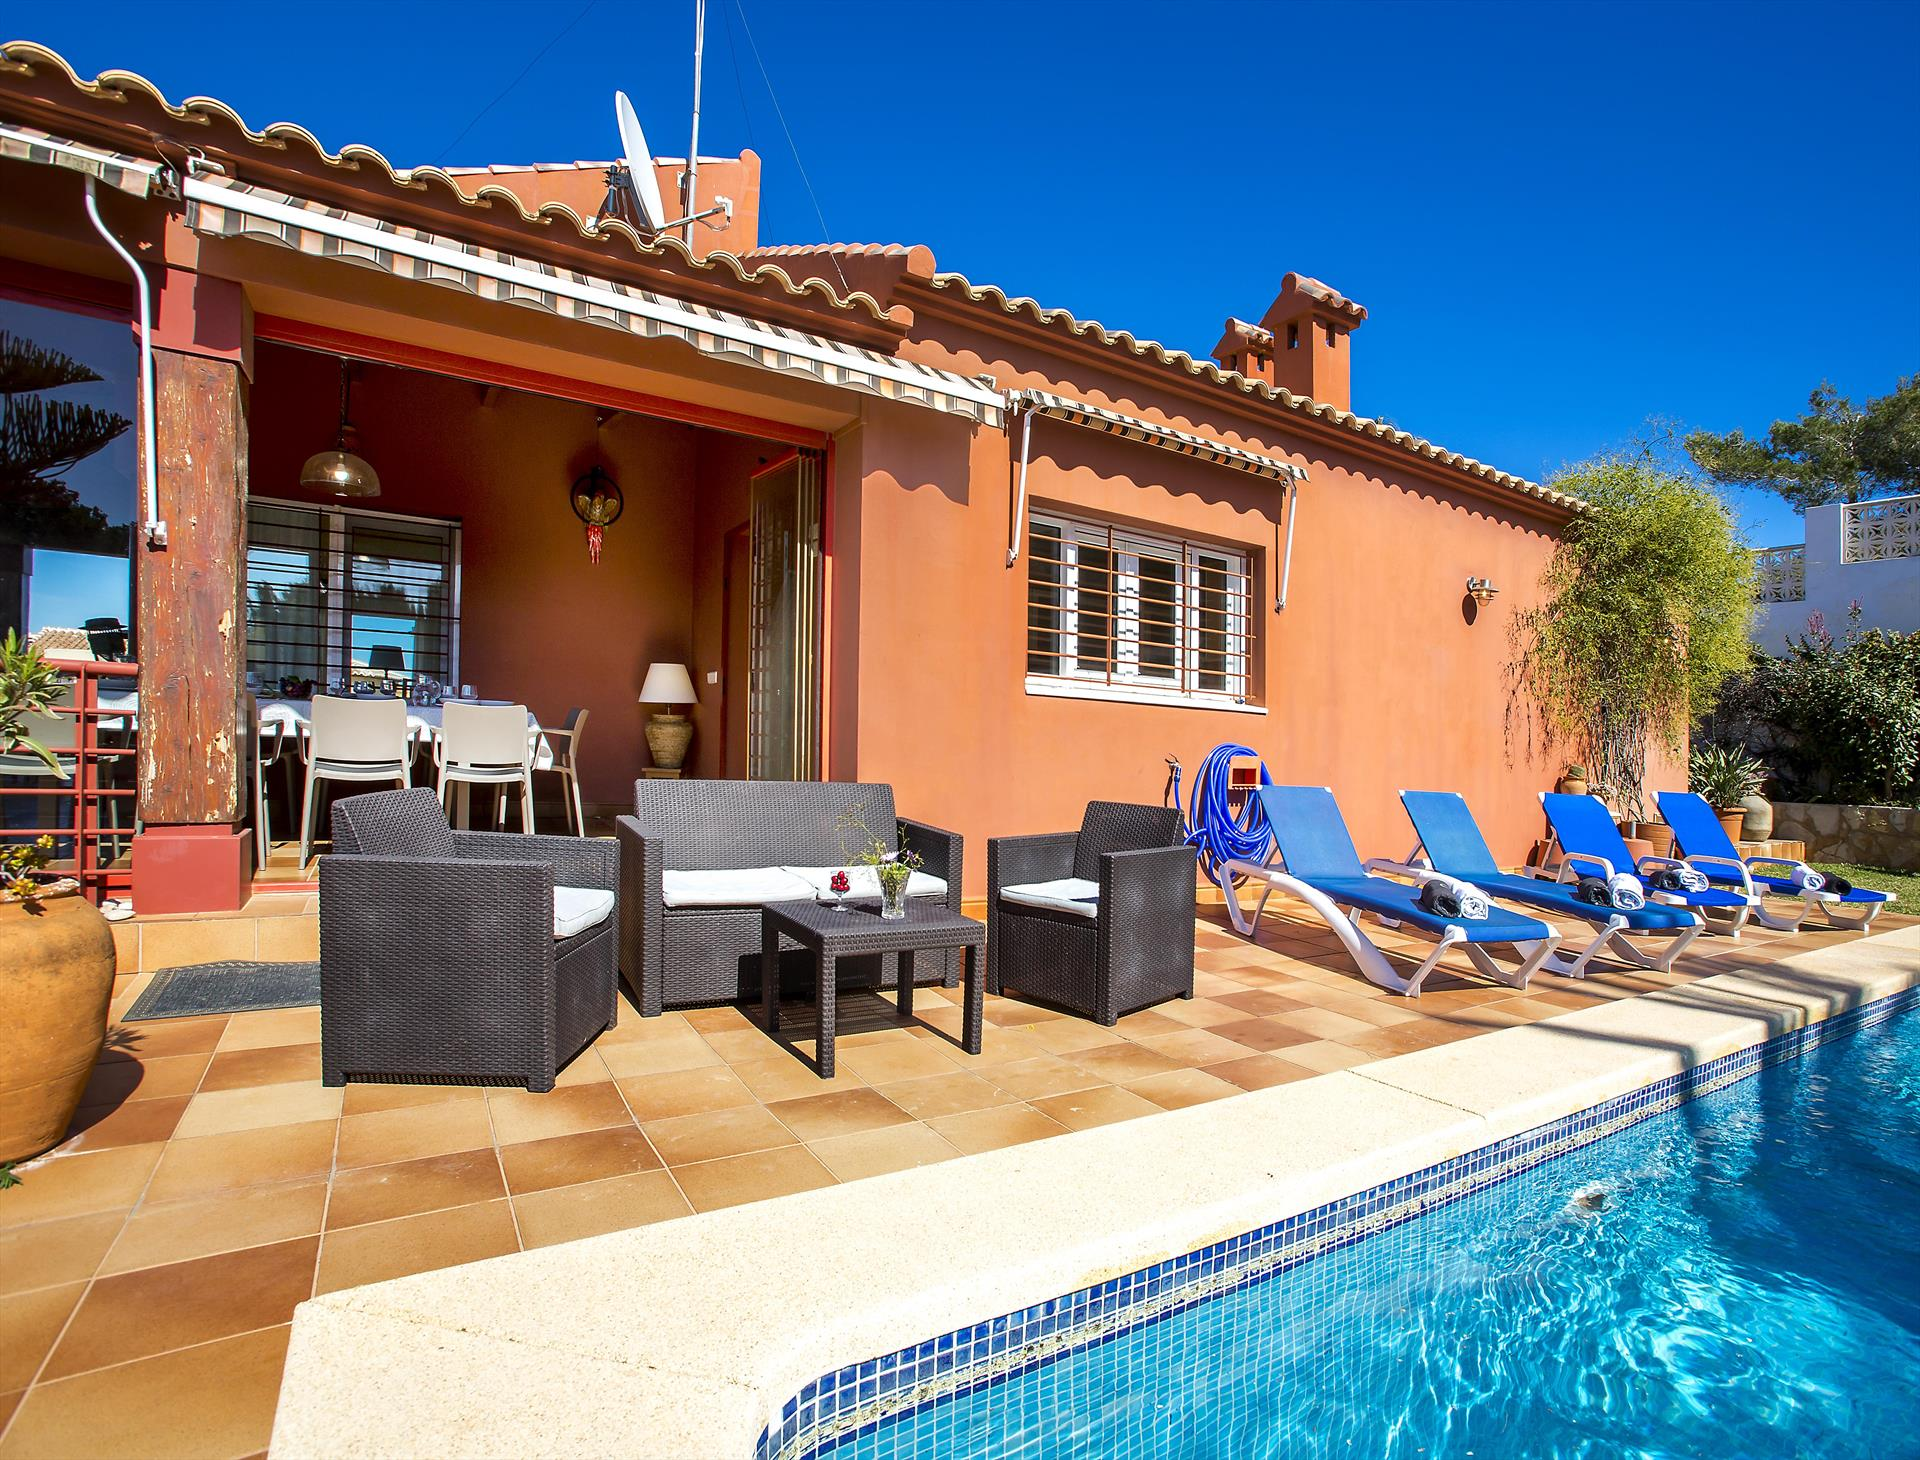 Azahara 8 pax, Wonderful and comfortable villa in Javea, on the Costa Blanca, Spain  with private pool for 8 persons.....